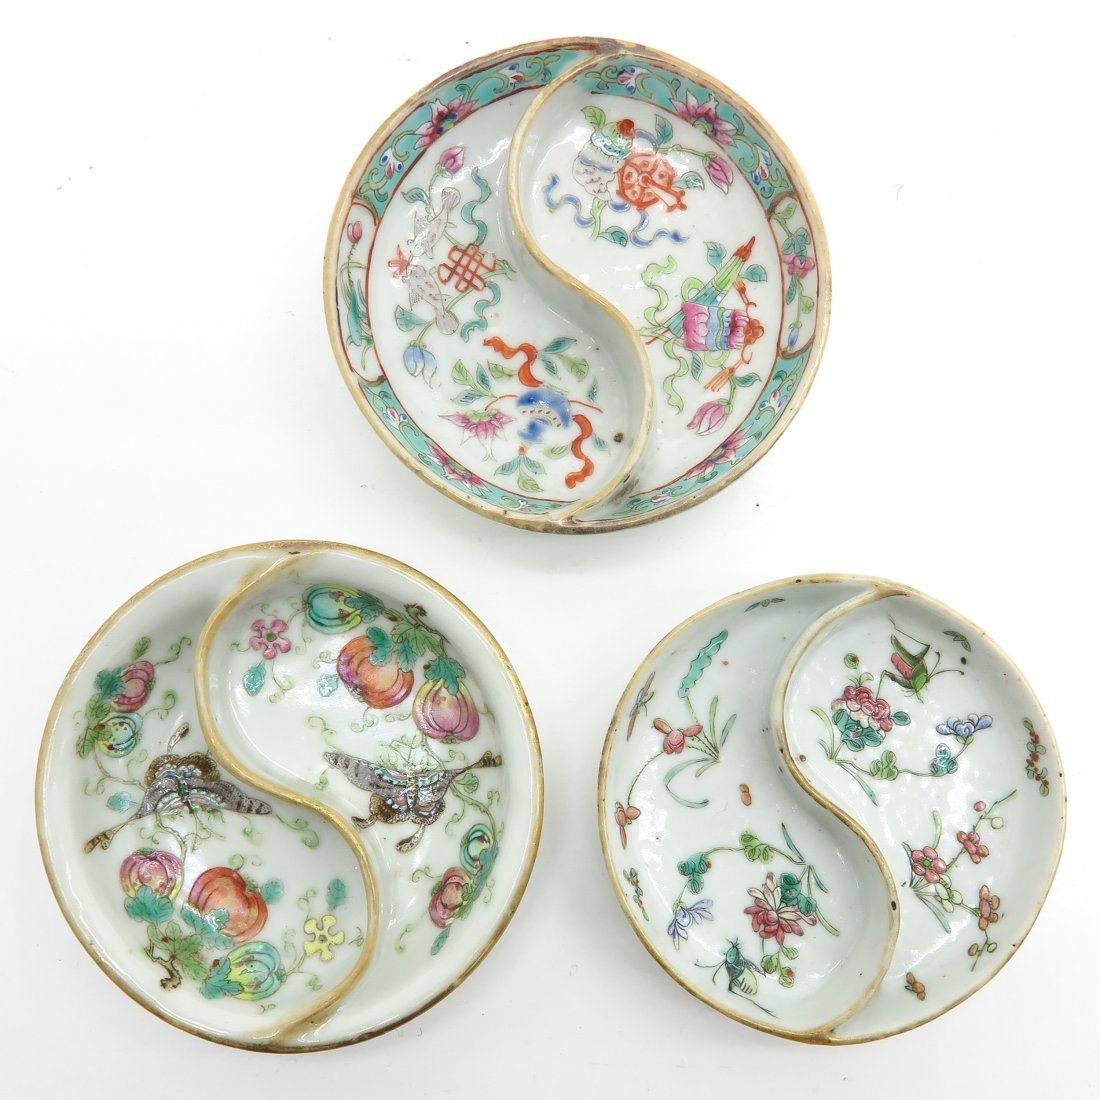 Lot of 3 China Porcelain Soy Trays